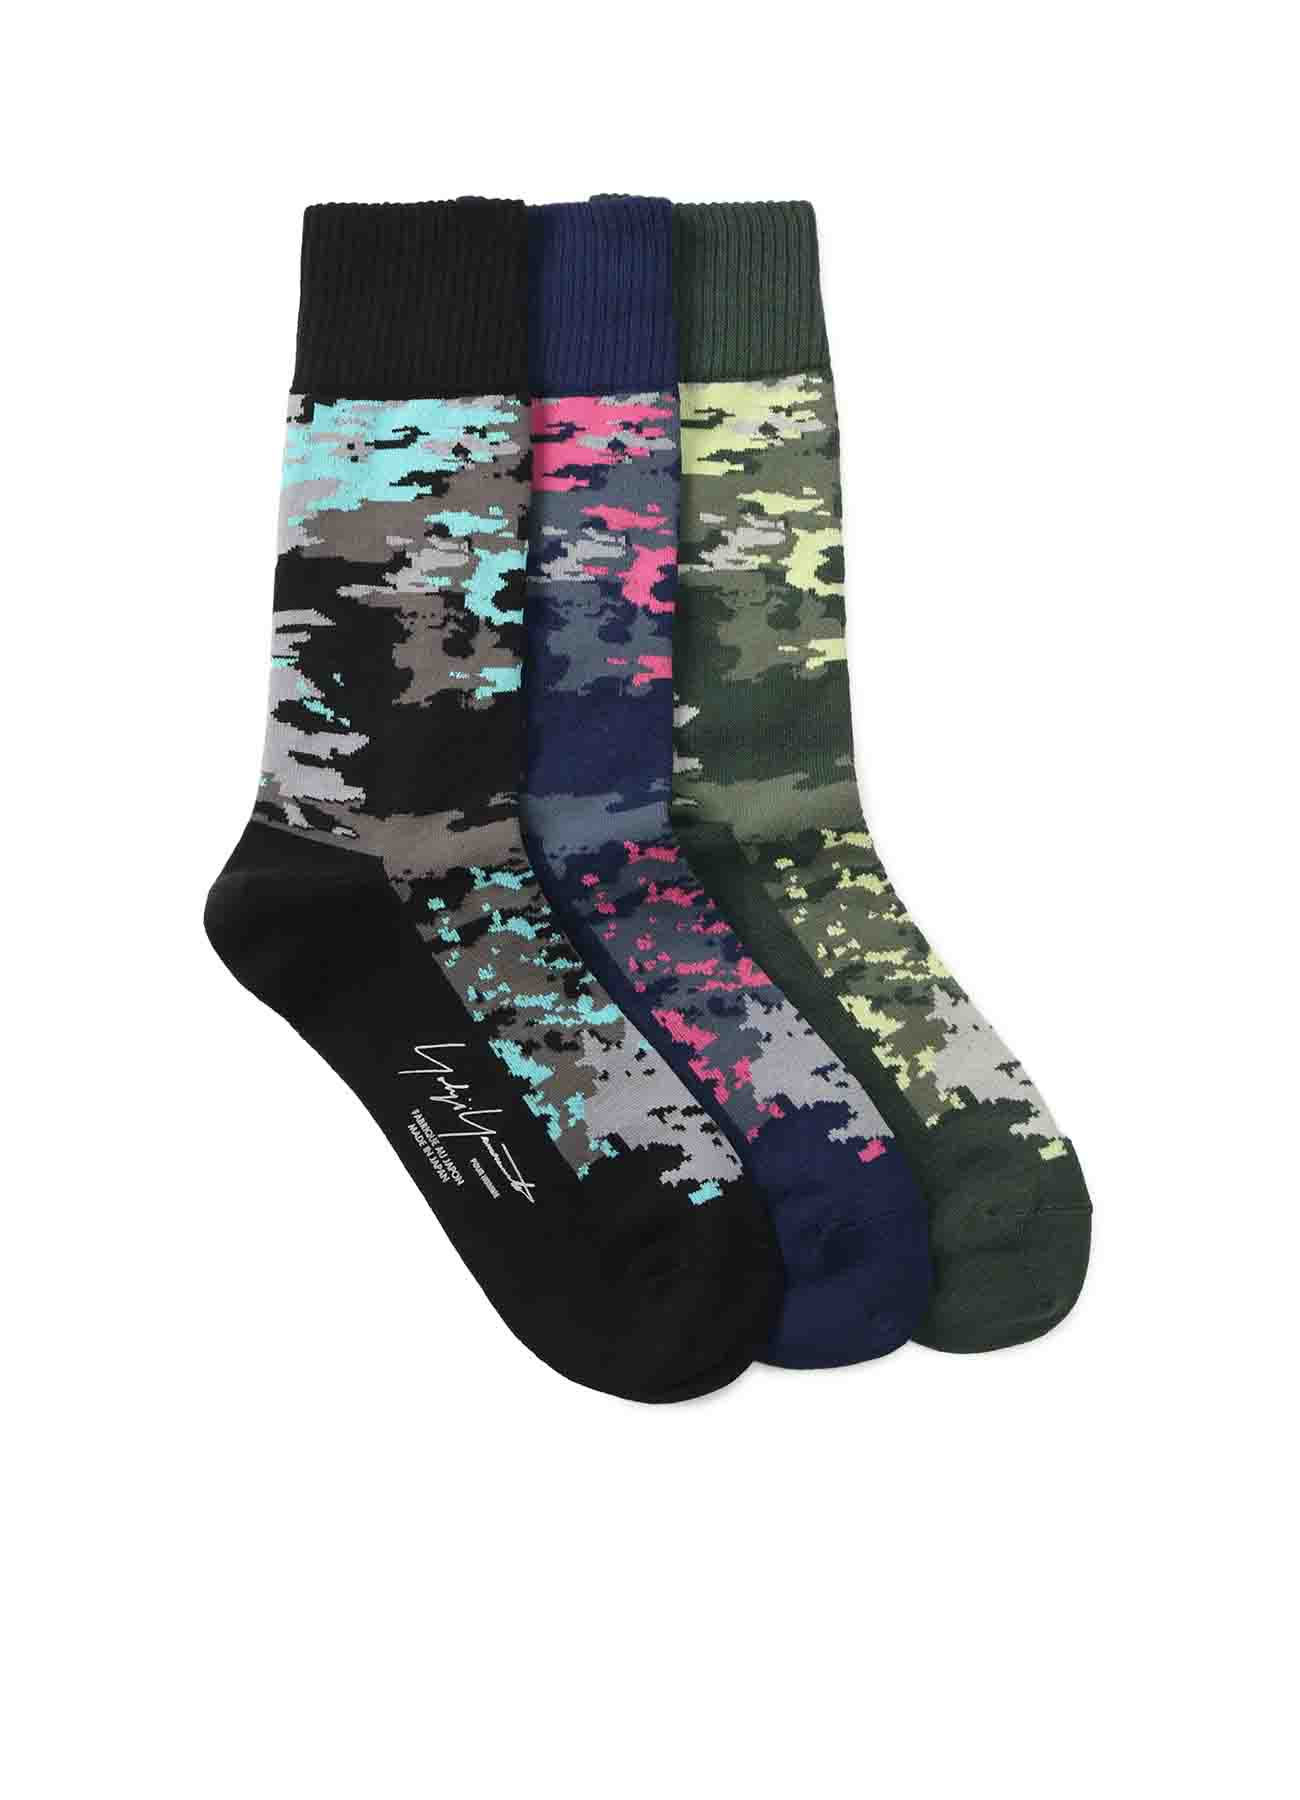 32/1C Cut boss CAMOFLAGE SOCKS